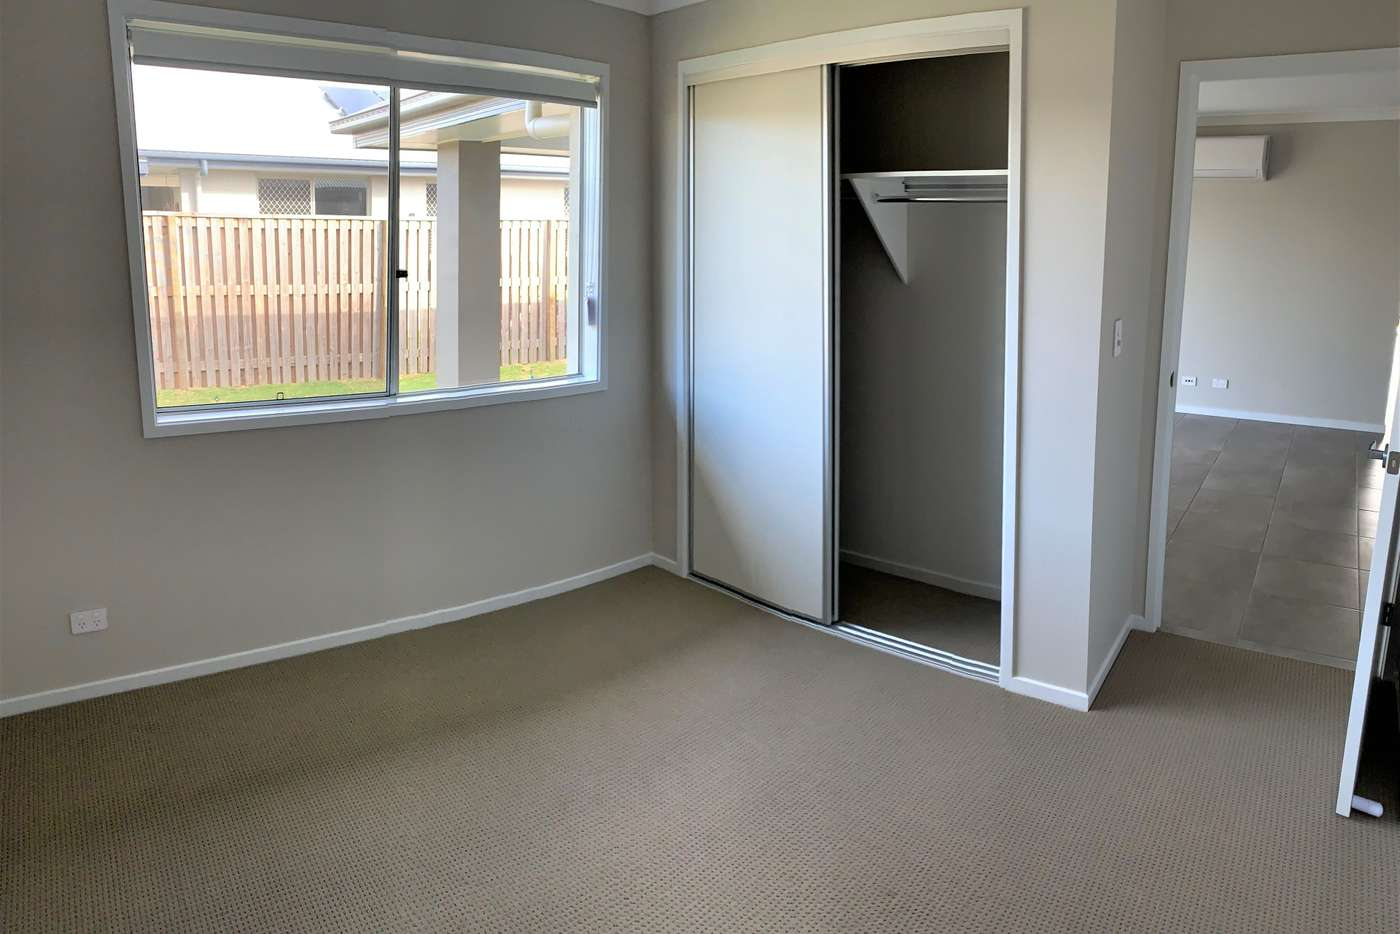 Sixth view of Homely house listing, 2/5 Tamarisk Street, Caboolture QLD 4510